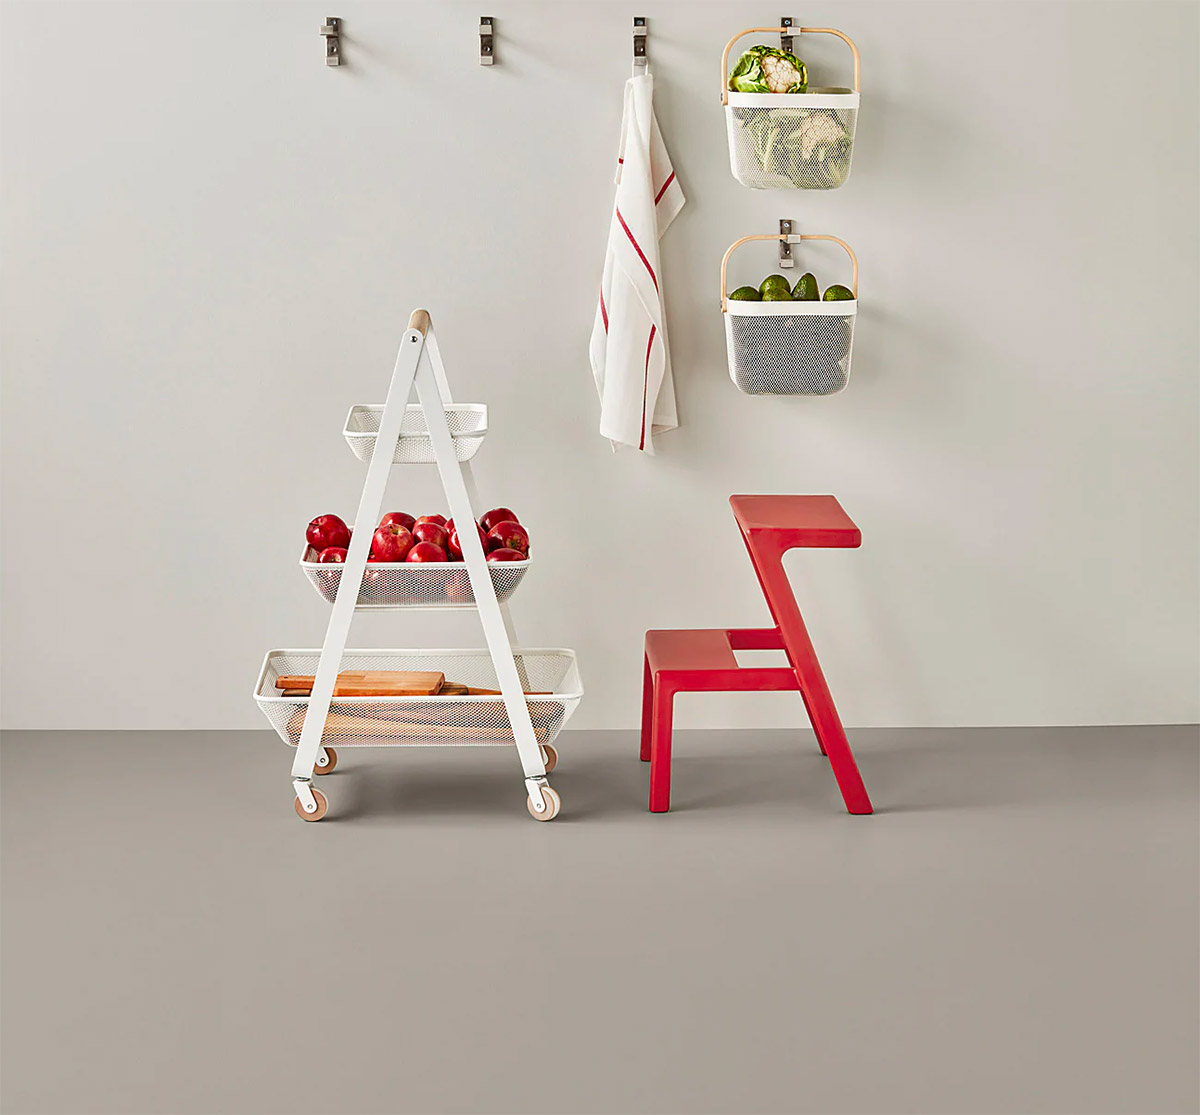 8 Step Stools and Ladders That Give You Extra Reach with